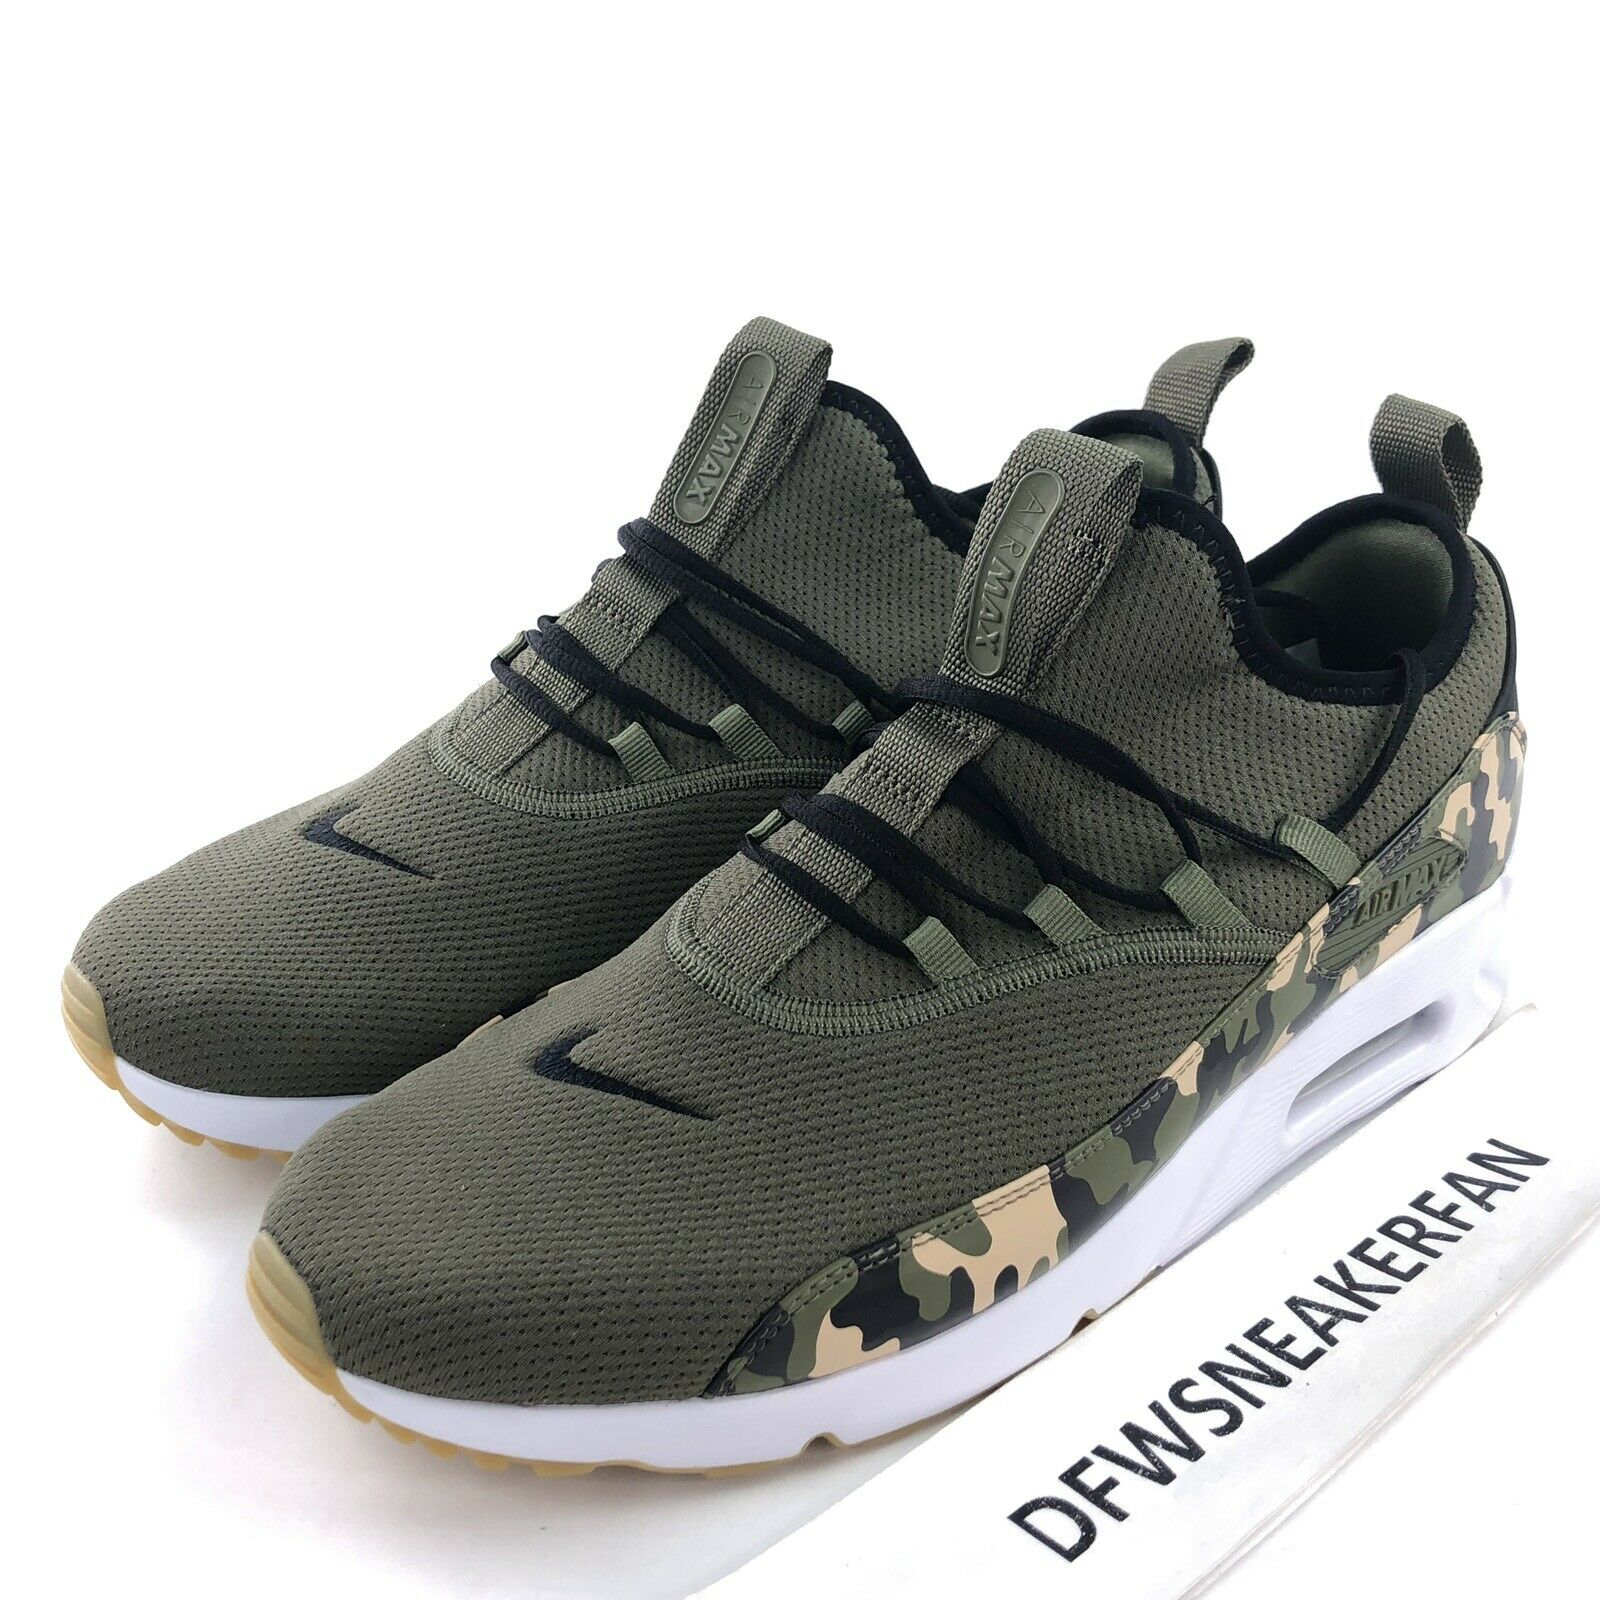 8d8d10e648 Nike Air Max 90 EZ Men's 10 Camo-Medium Olive Running shoes AO1745-201